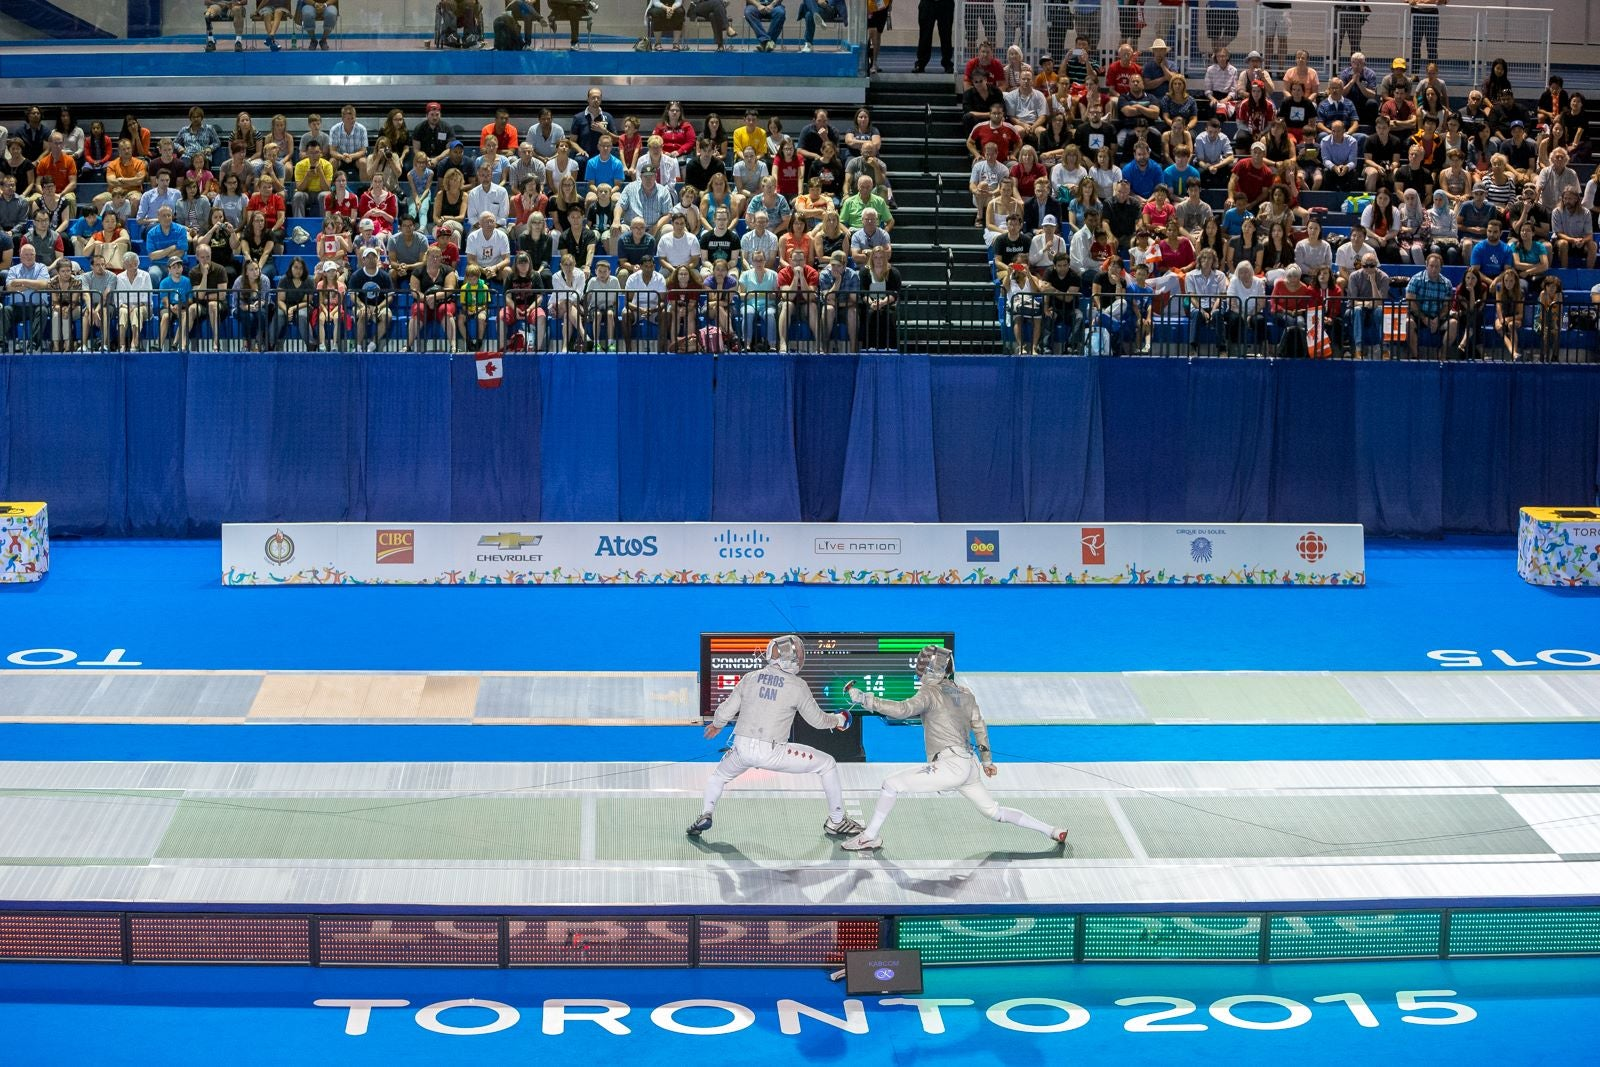 Eli Dershwitz, right, fences in the Pan American Games in Toronto in 2015.